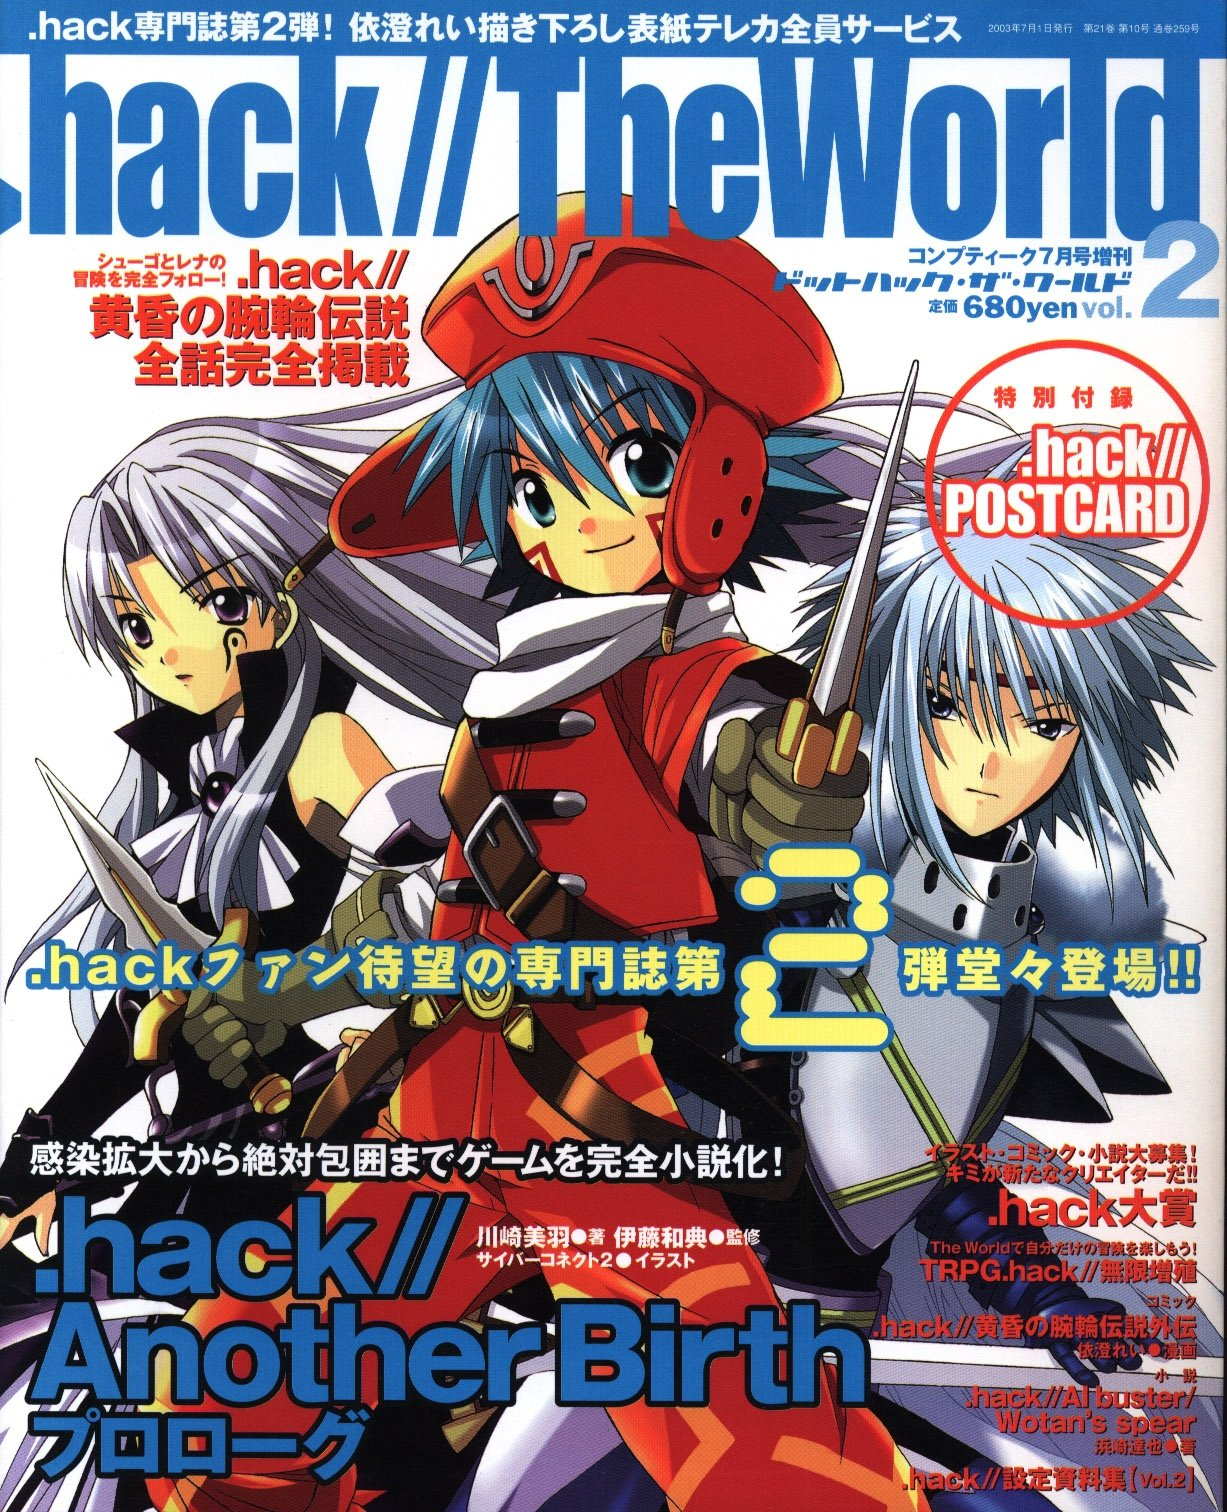 Comptiq Issue 259 (.hack\\TheWorld Vol.2) (July 2003)